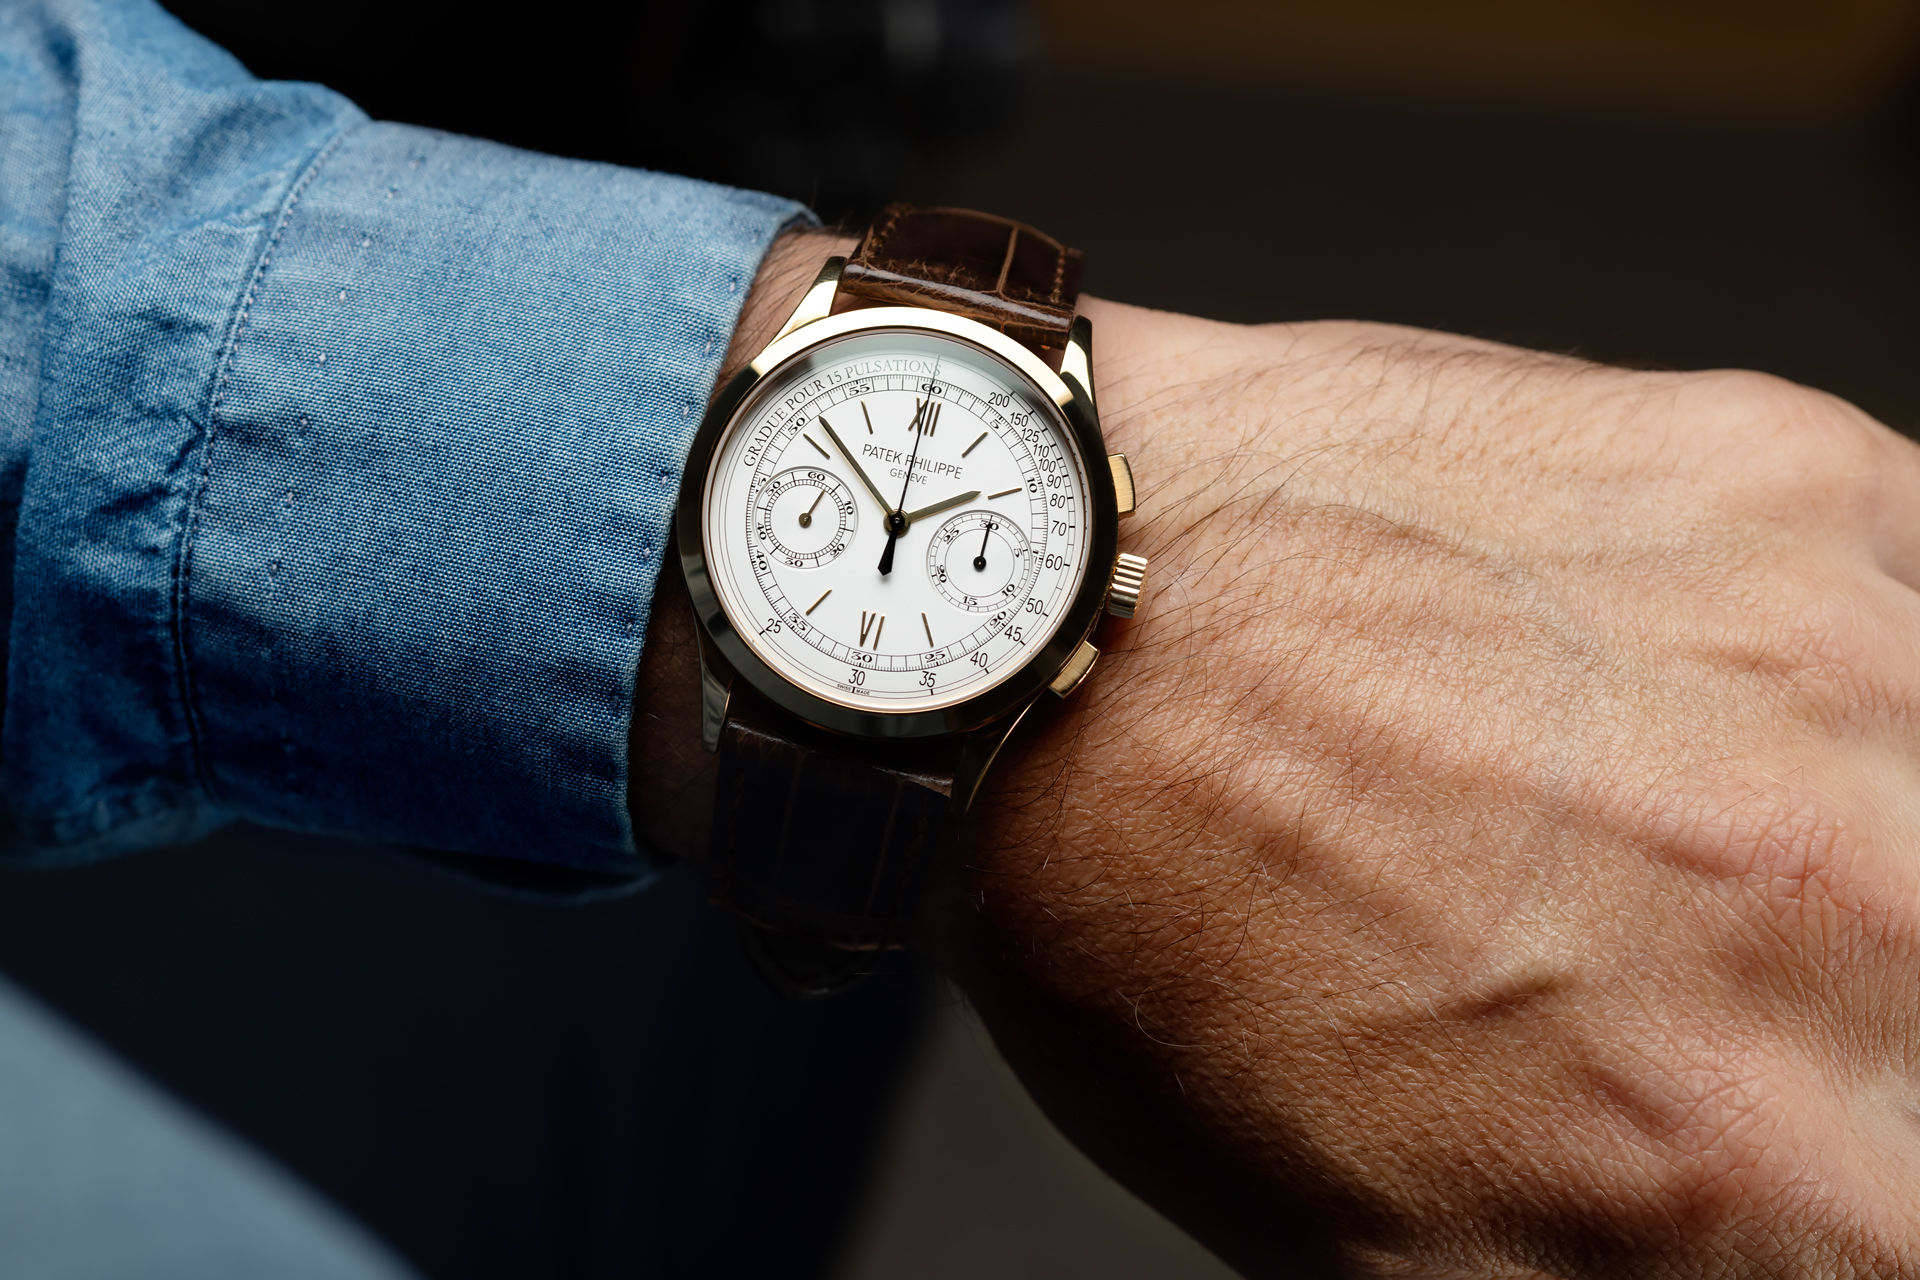 ref 5170J-001 | Yellow Gold - Box & Papers | Patek Philippe Chronograph